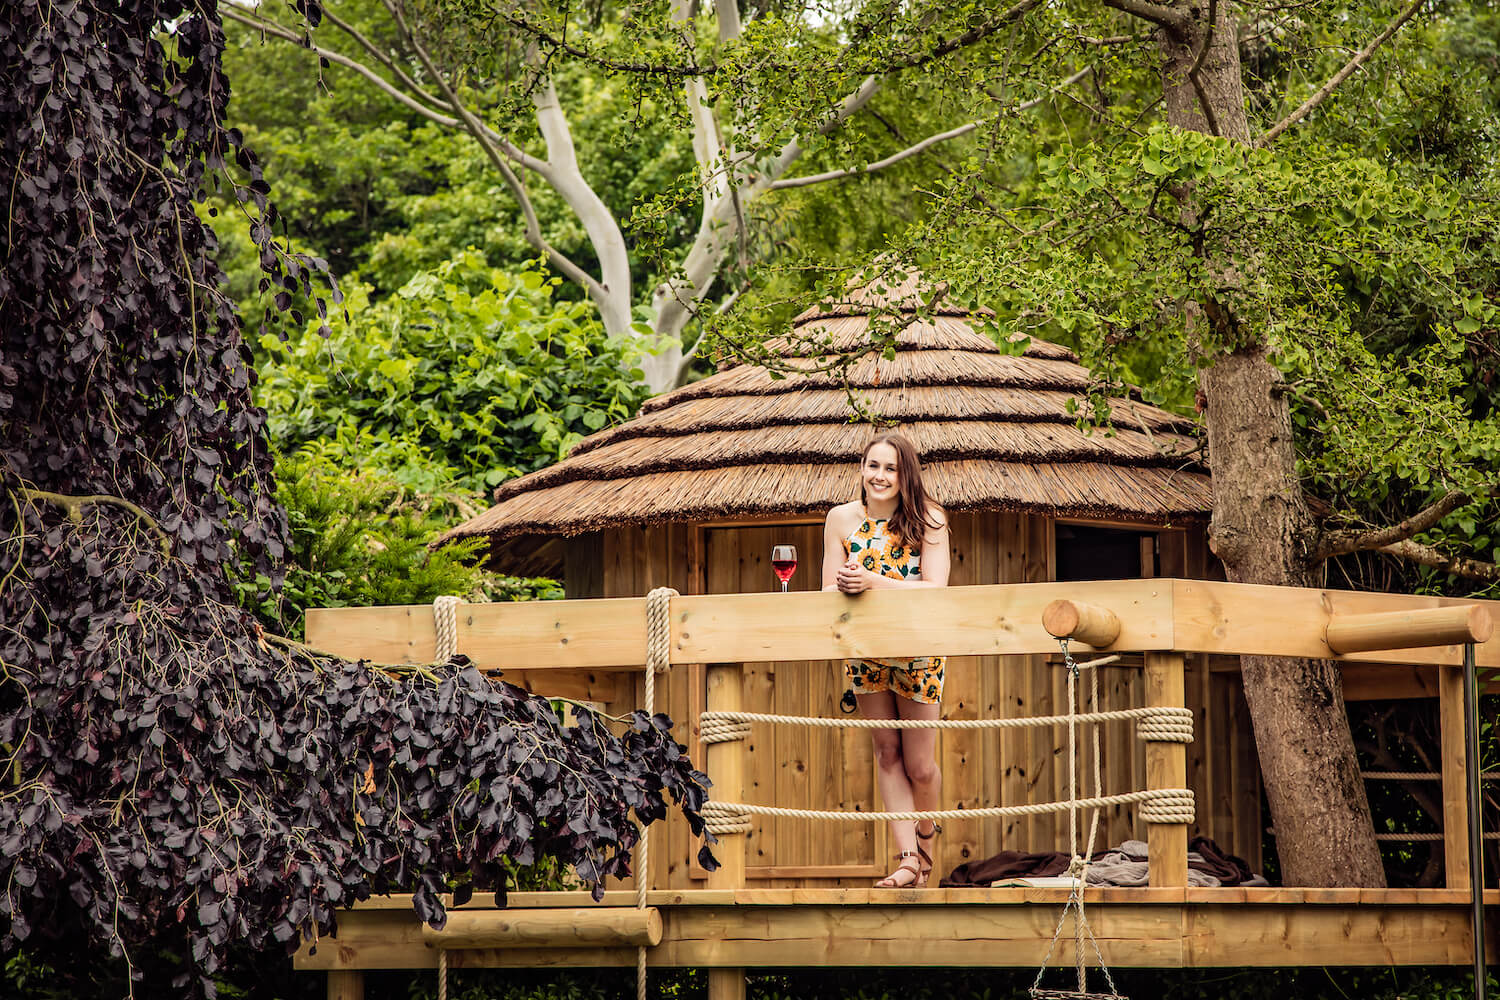 Treehouse-Life-County-Concierge.jpg